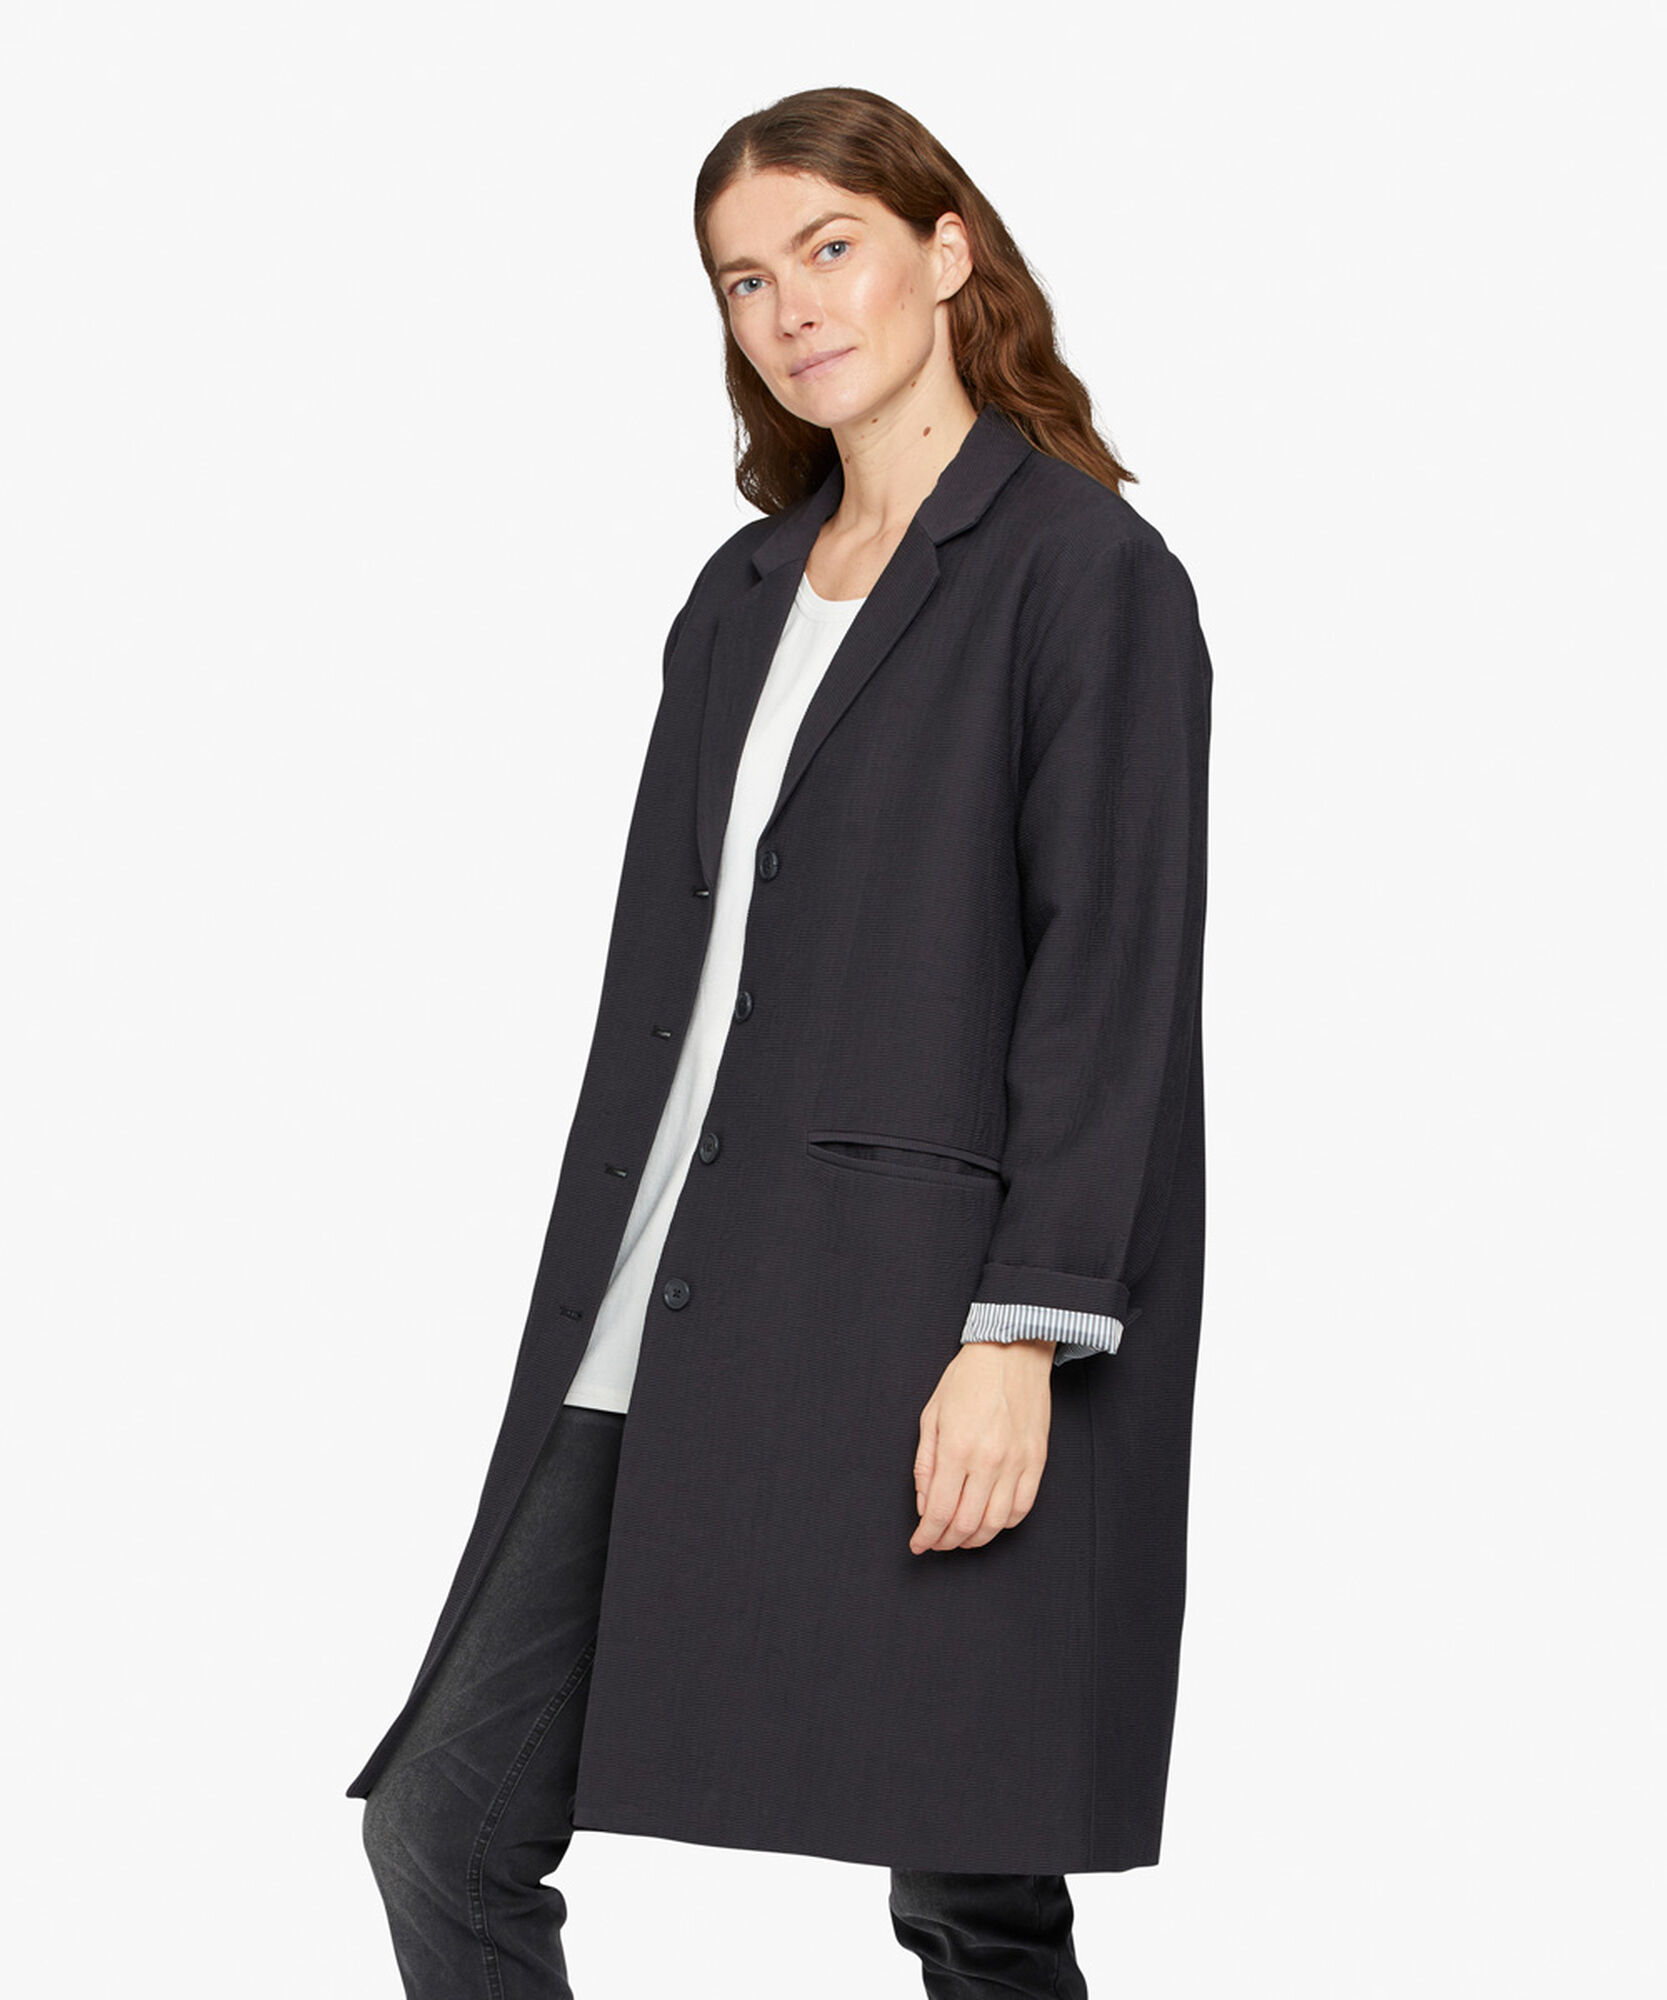 TURA COAT, Black, hi-res